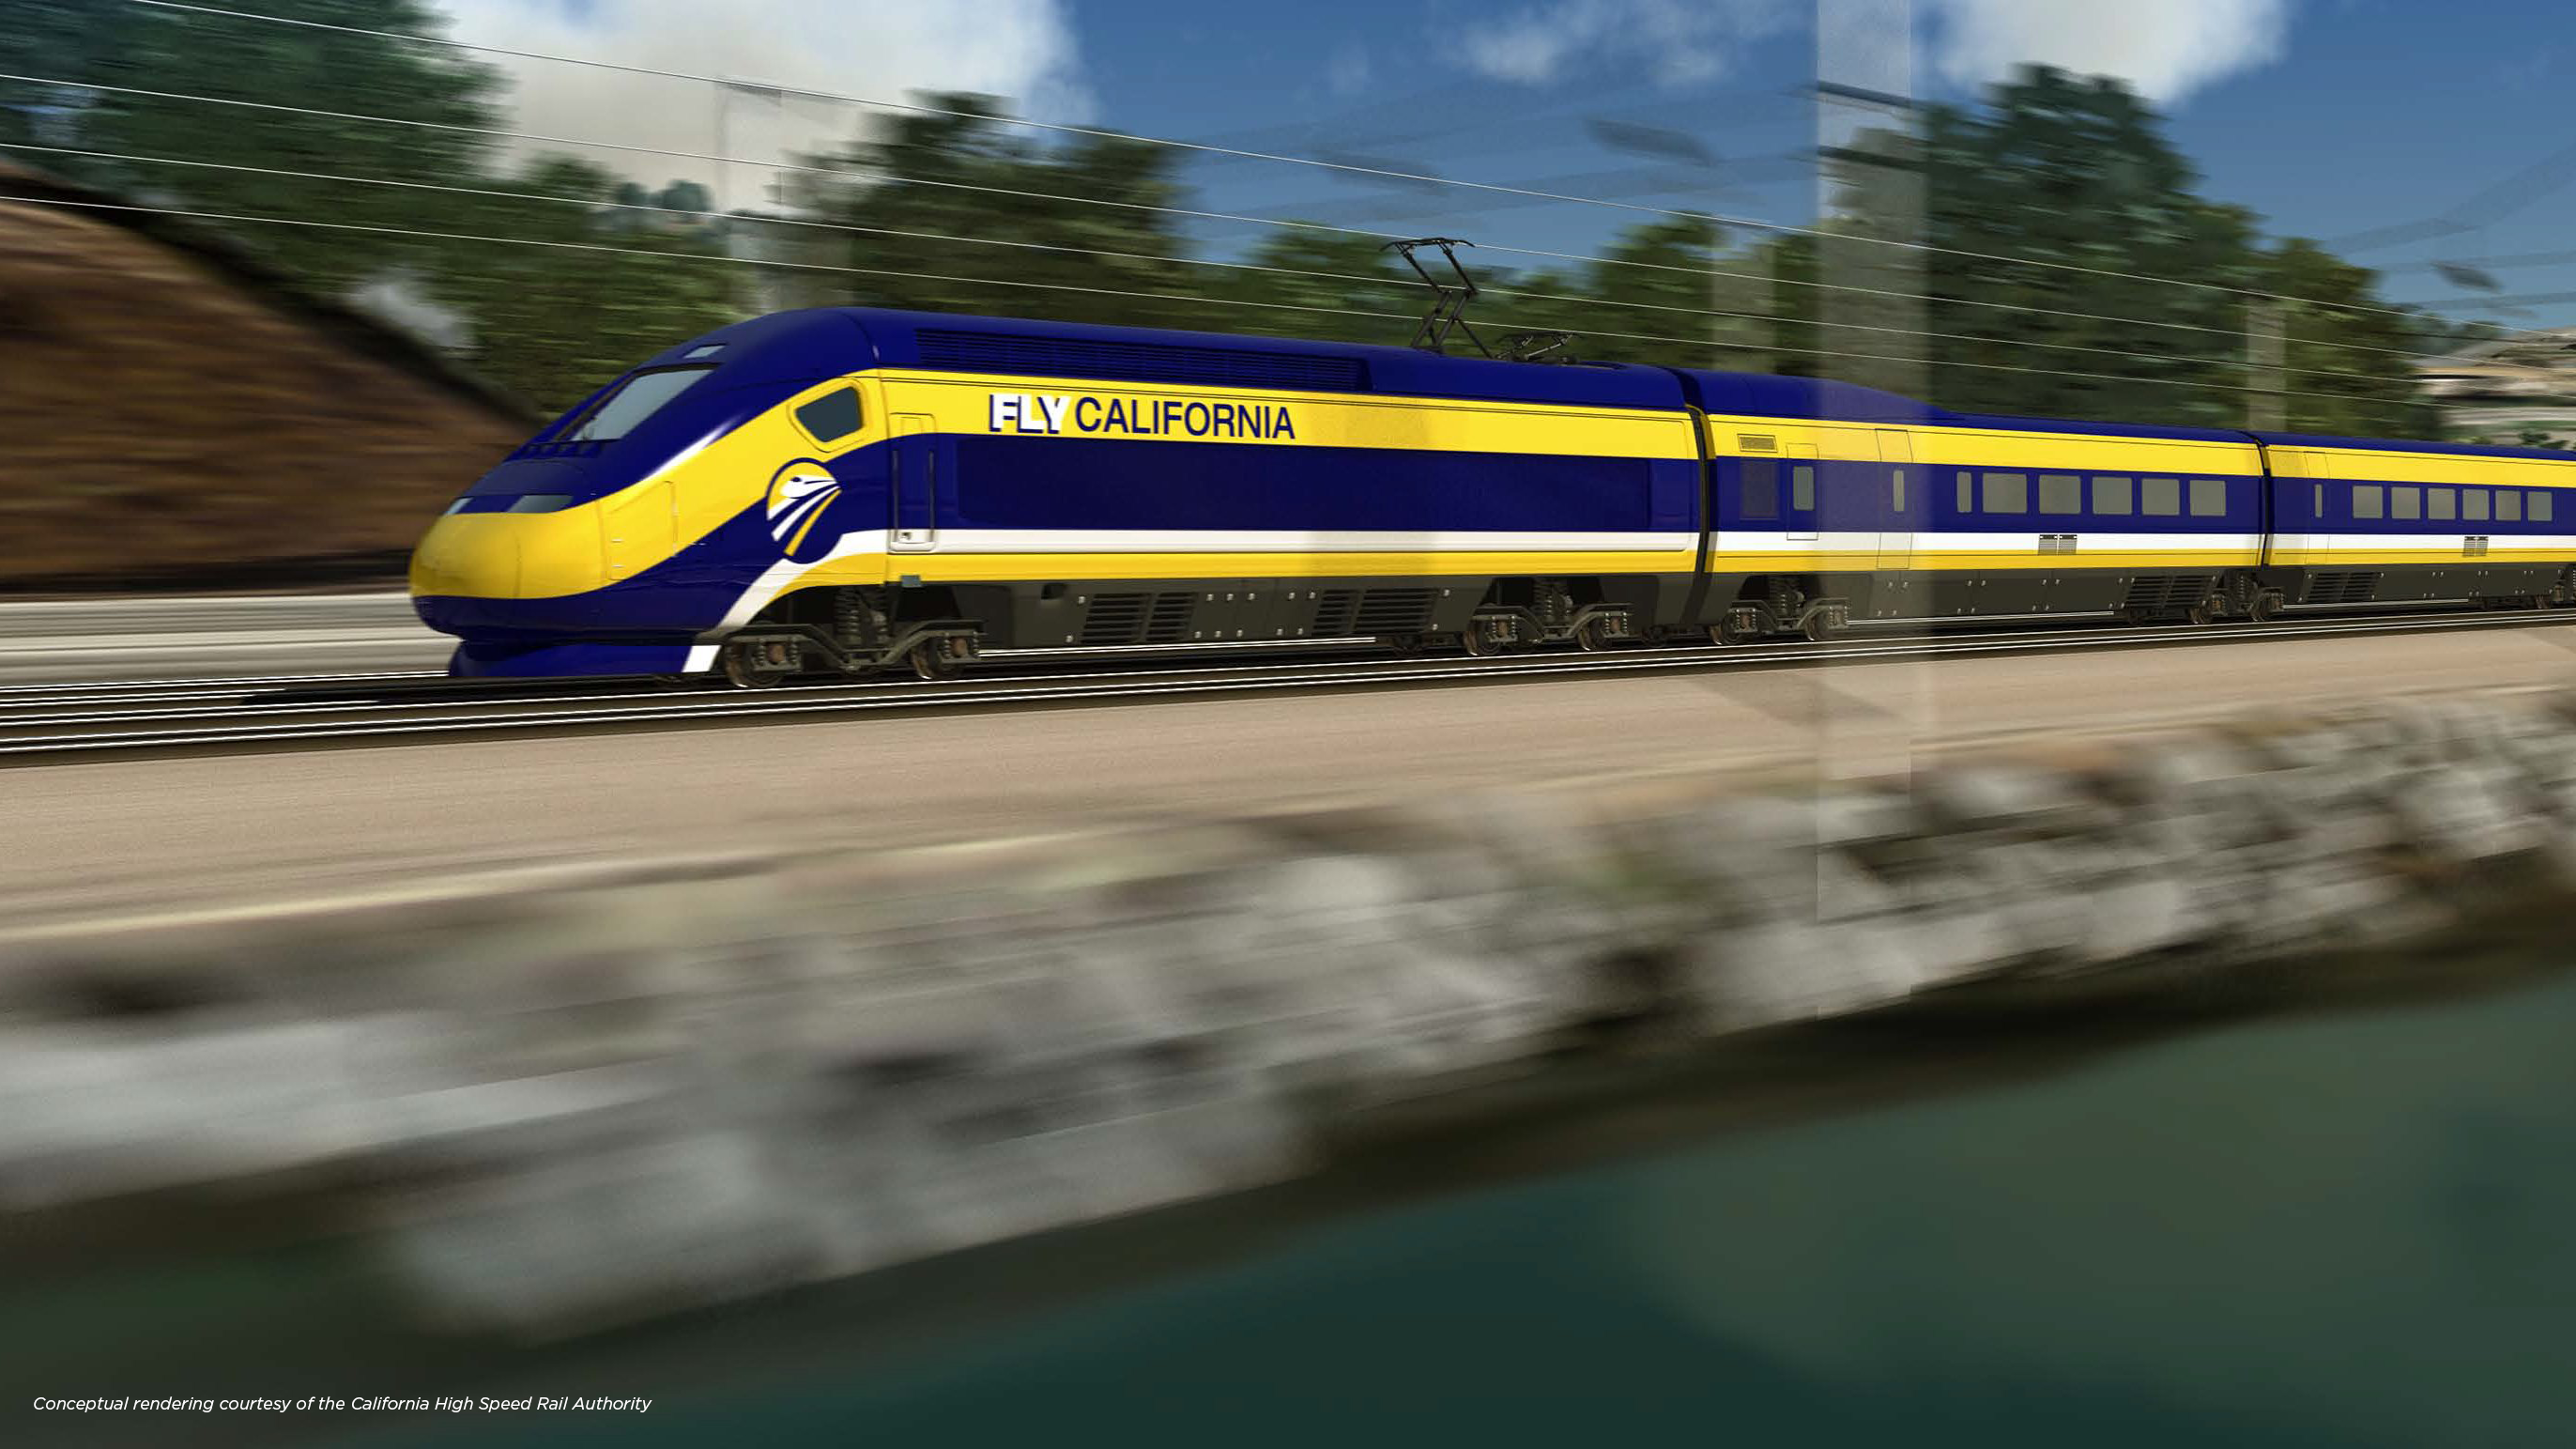 A conceptual rendering of California High Speed Rail System - Technology that Railway Engineering students can learn more about